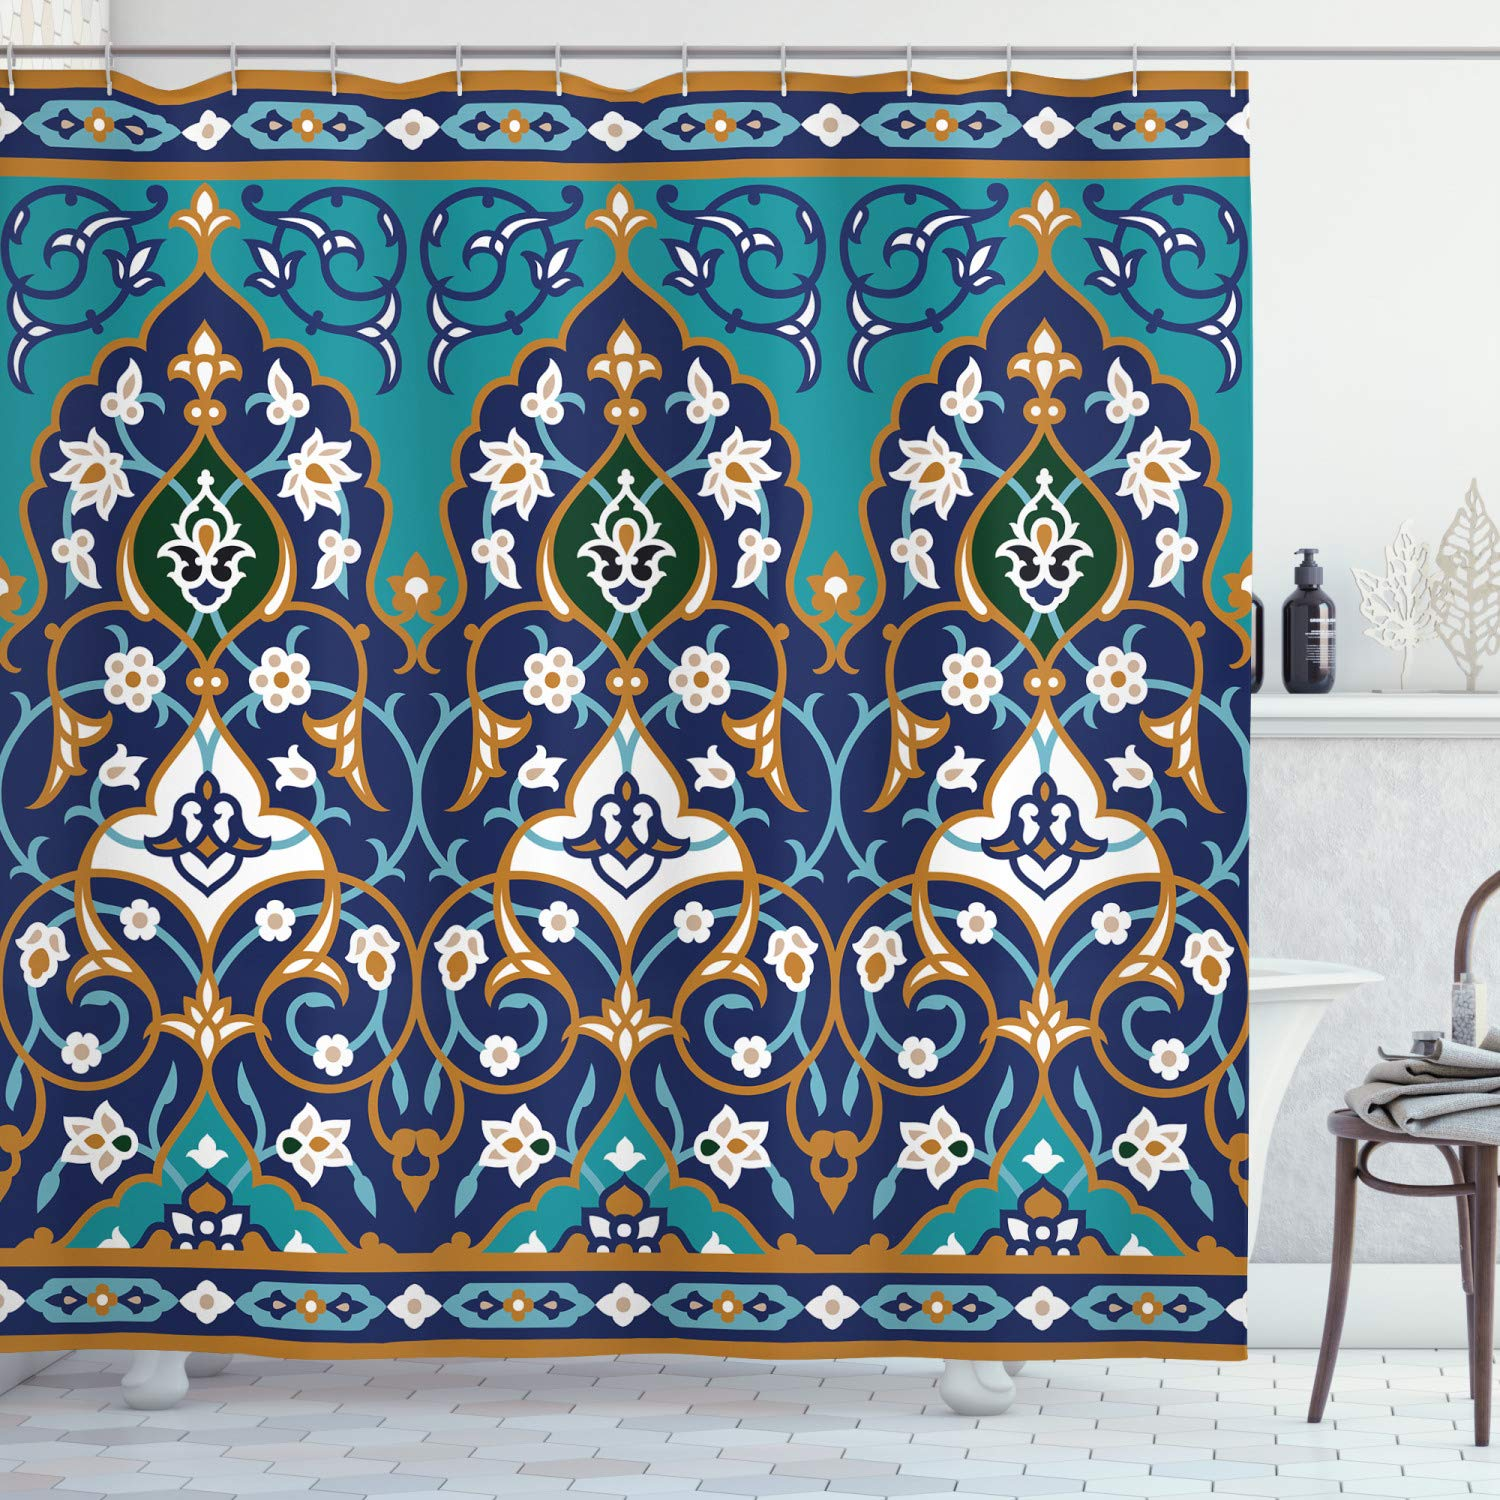 """Ambesonne Moroccan Shower Curtain, Ottoman Folkloric Art Inspired Abstract Aged Middle Age Renaissance Print, Cloth Fabric Bathroom Decor Set with Hooks, 75"""" Long, Navy Blue"""